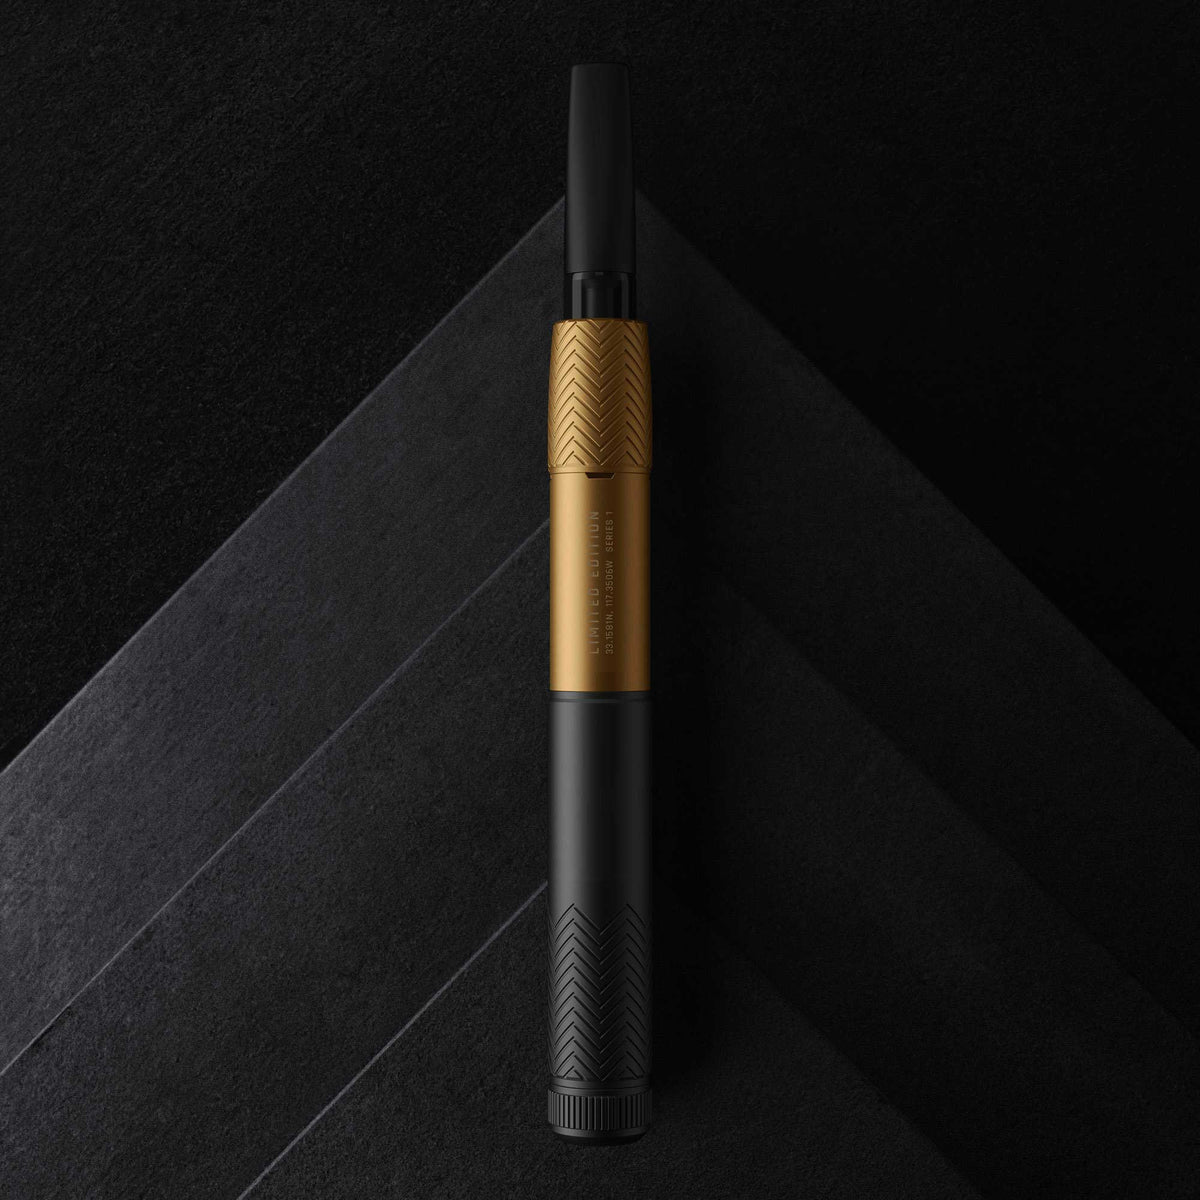 Black and Gold Vape Pen Battery with Alternate Background